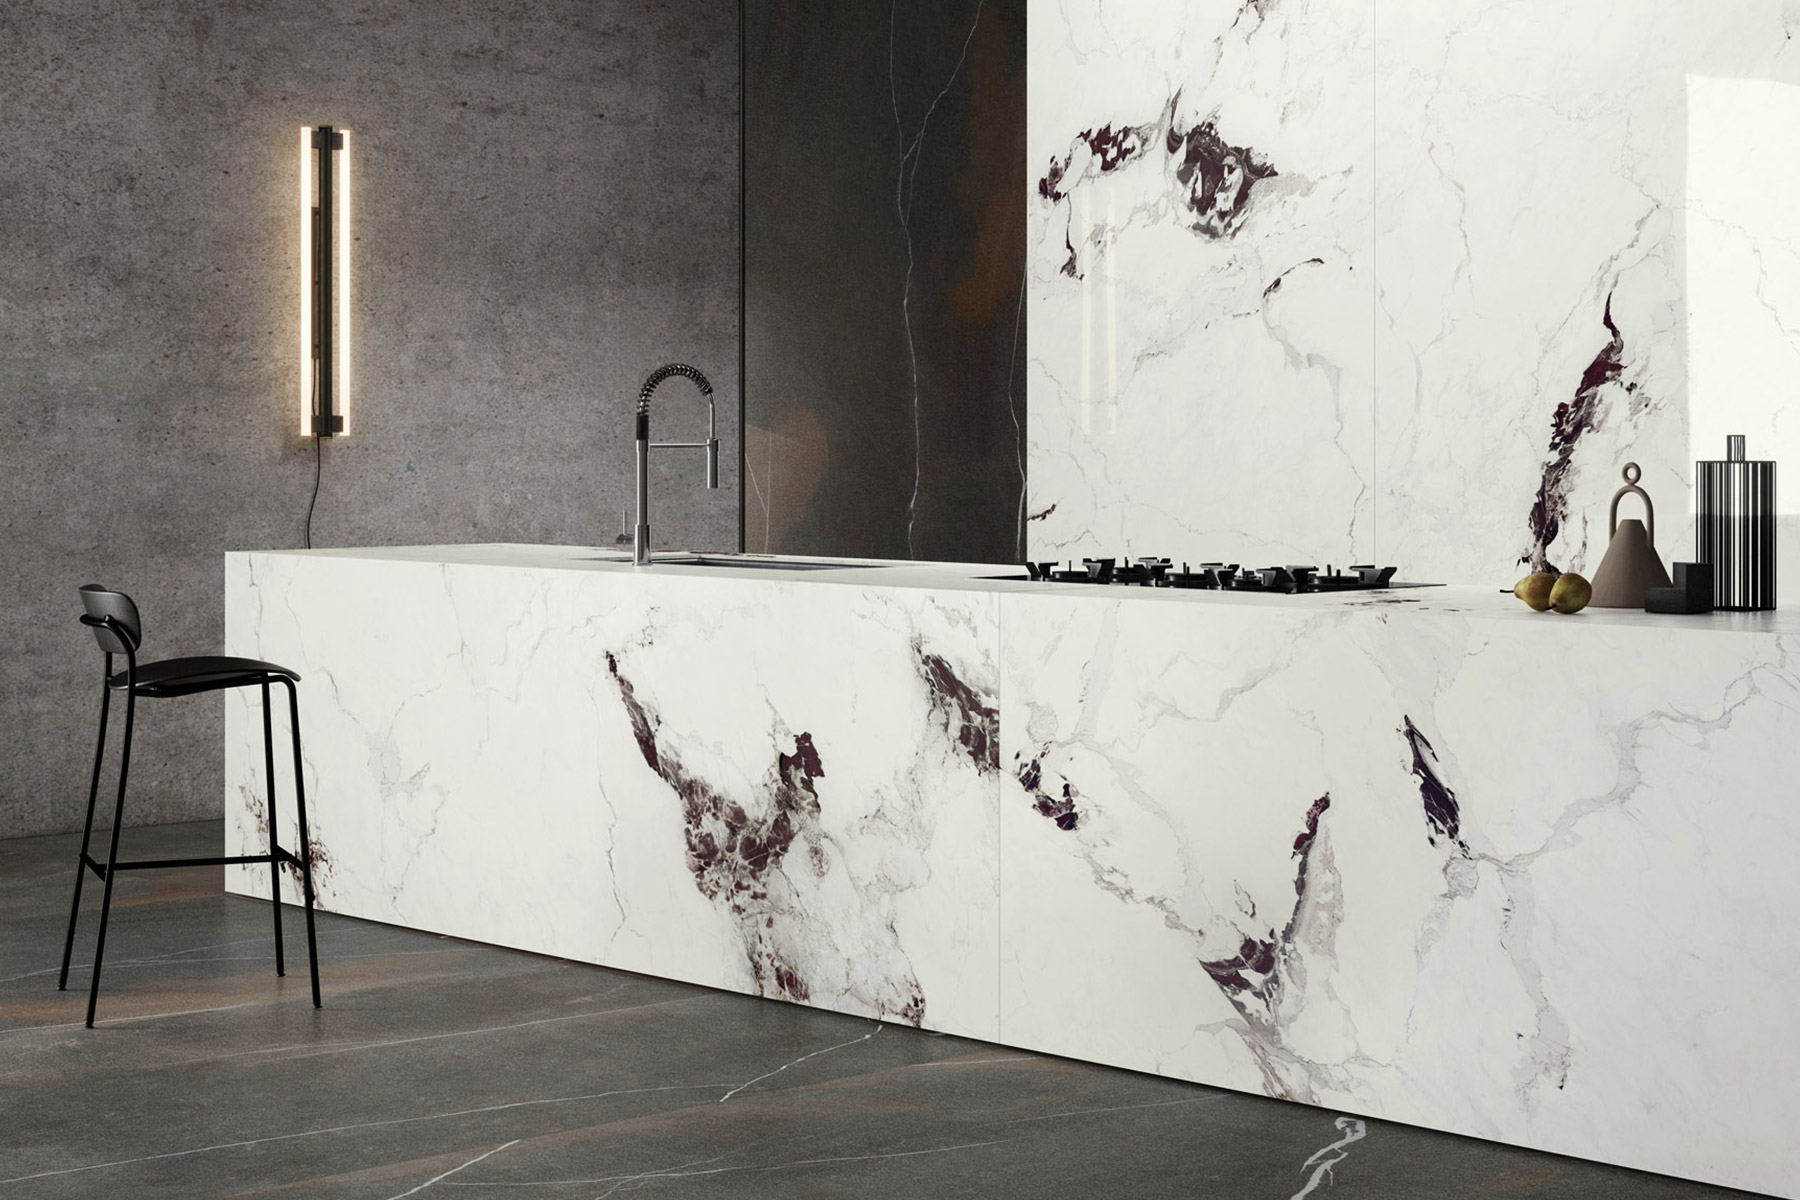 porcelain tile images: Marvel range high quality photo